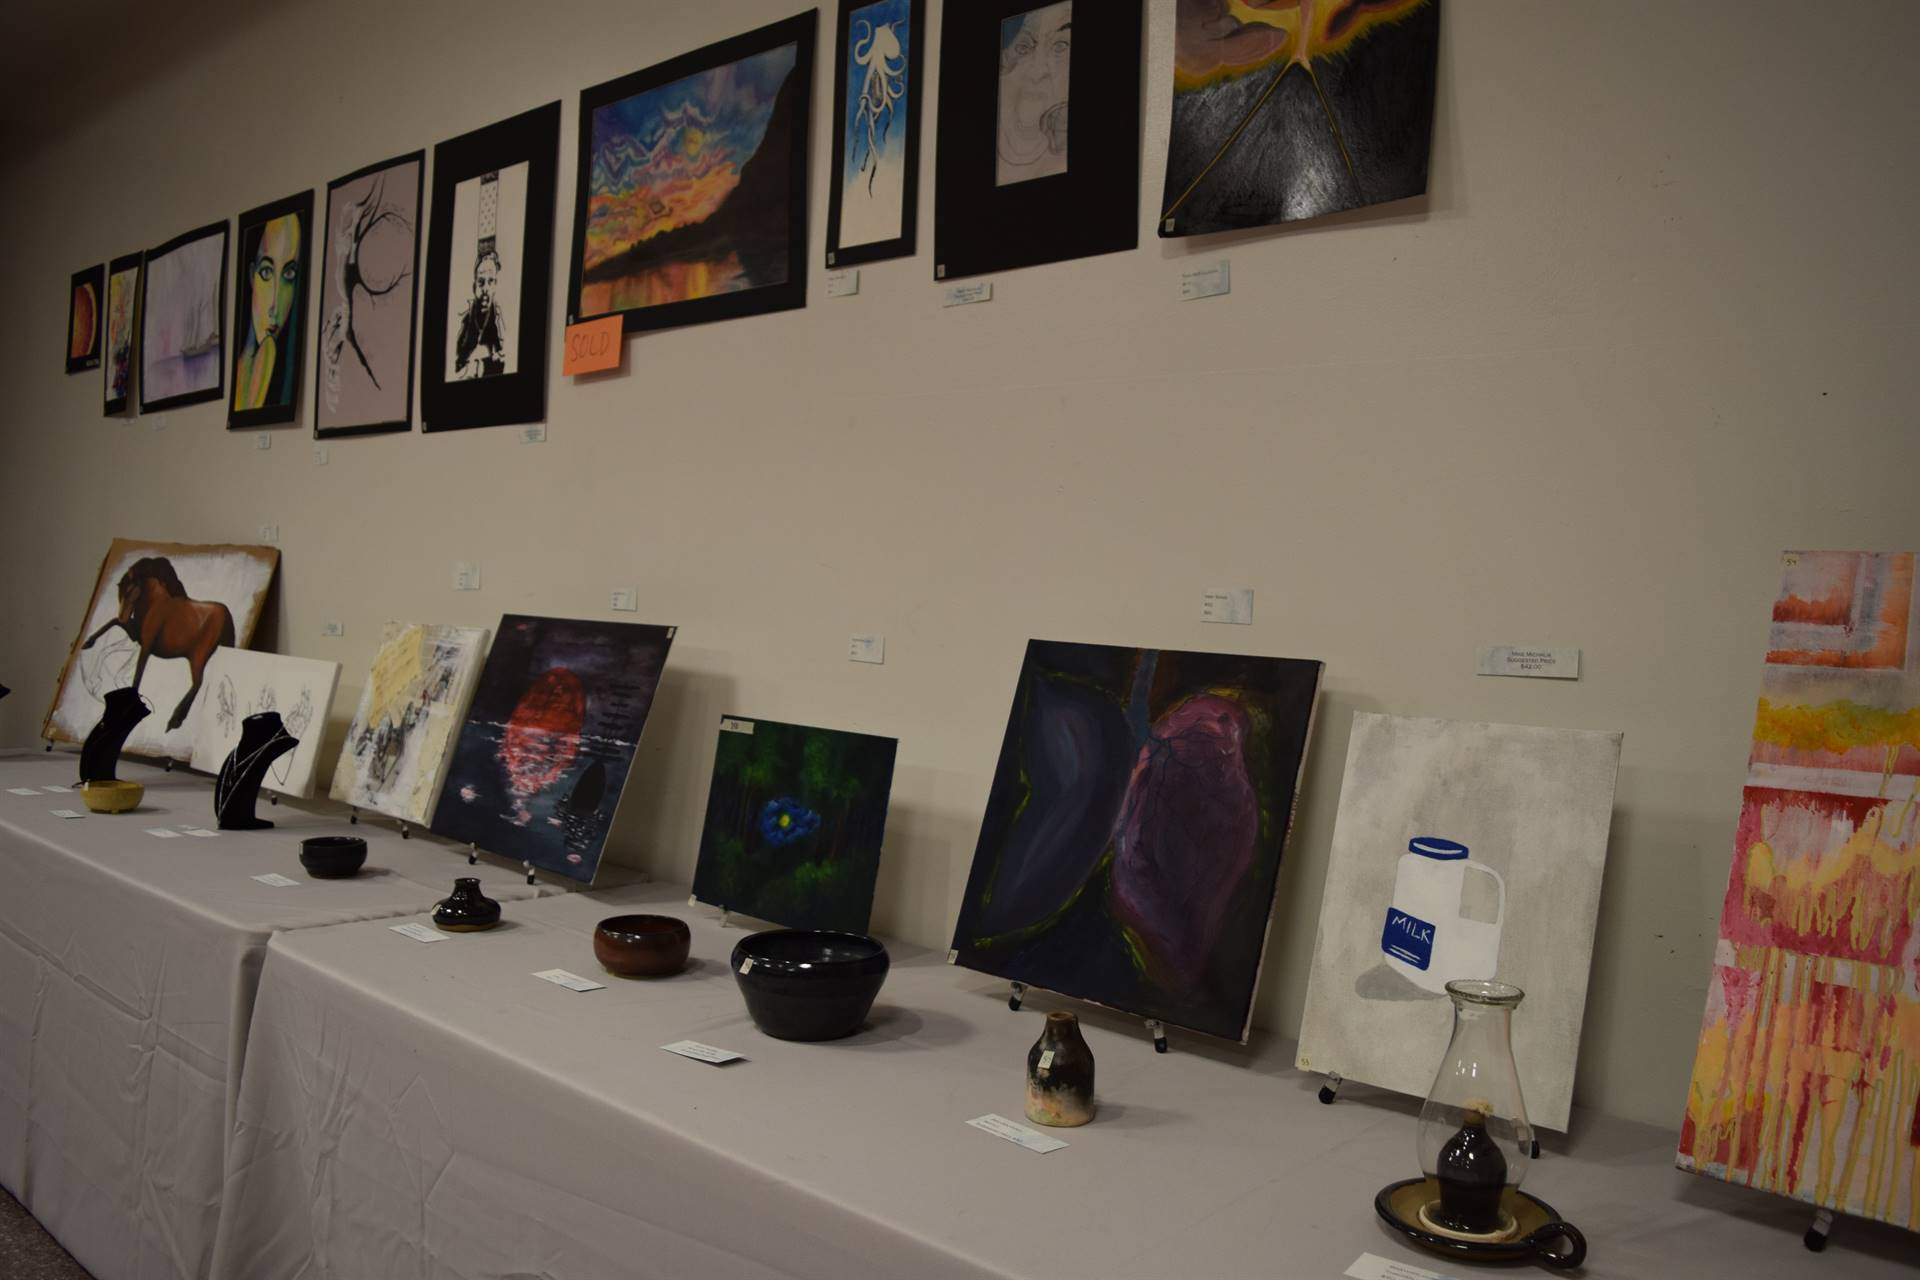 student paintings and drawings on display